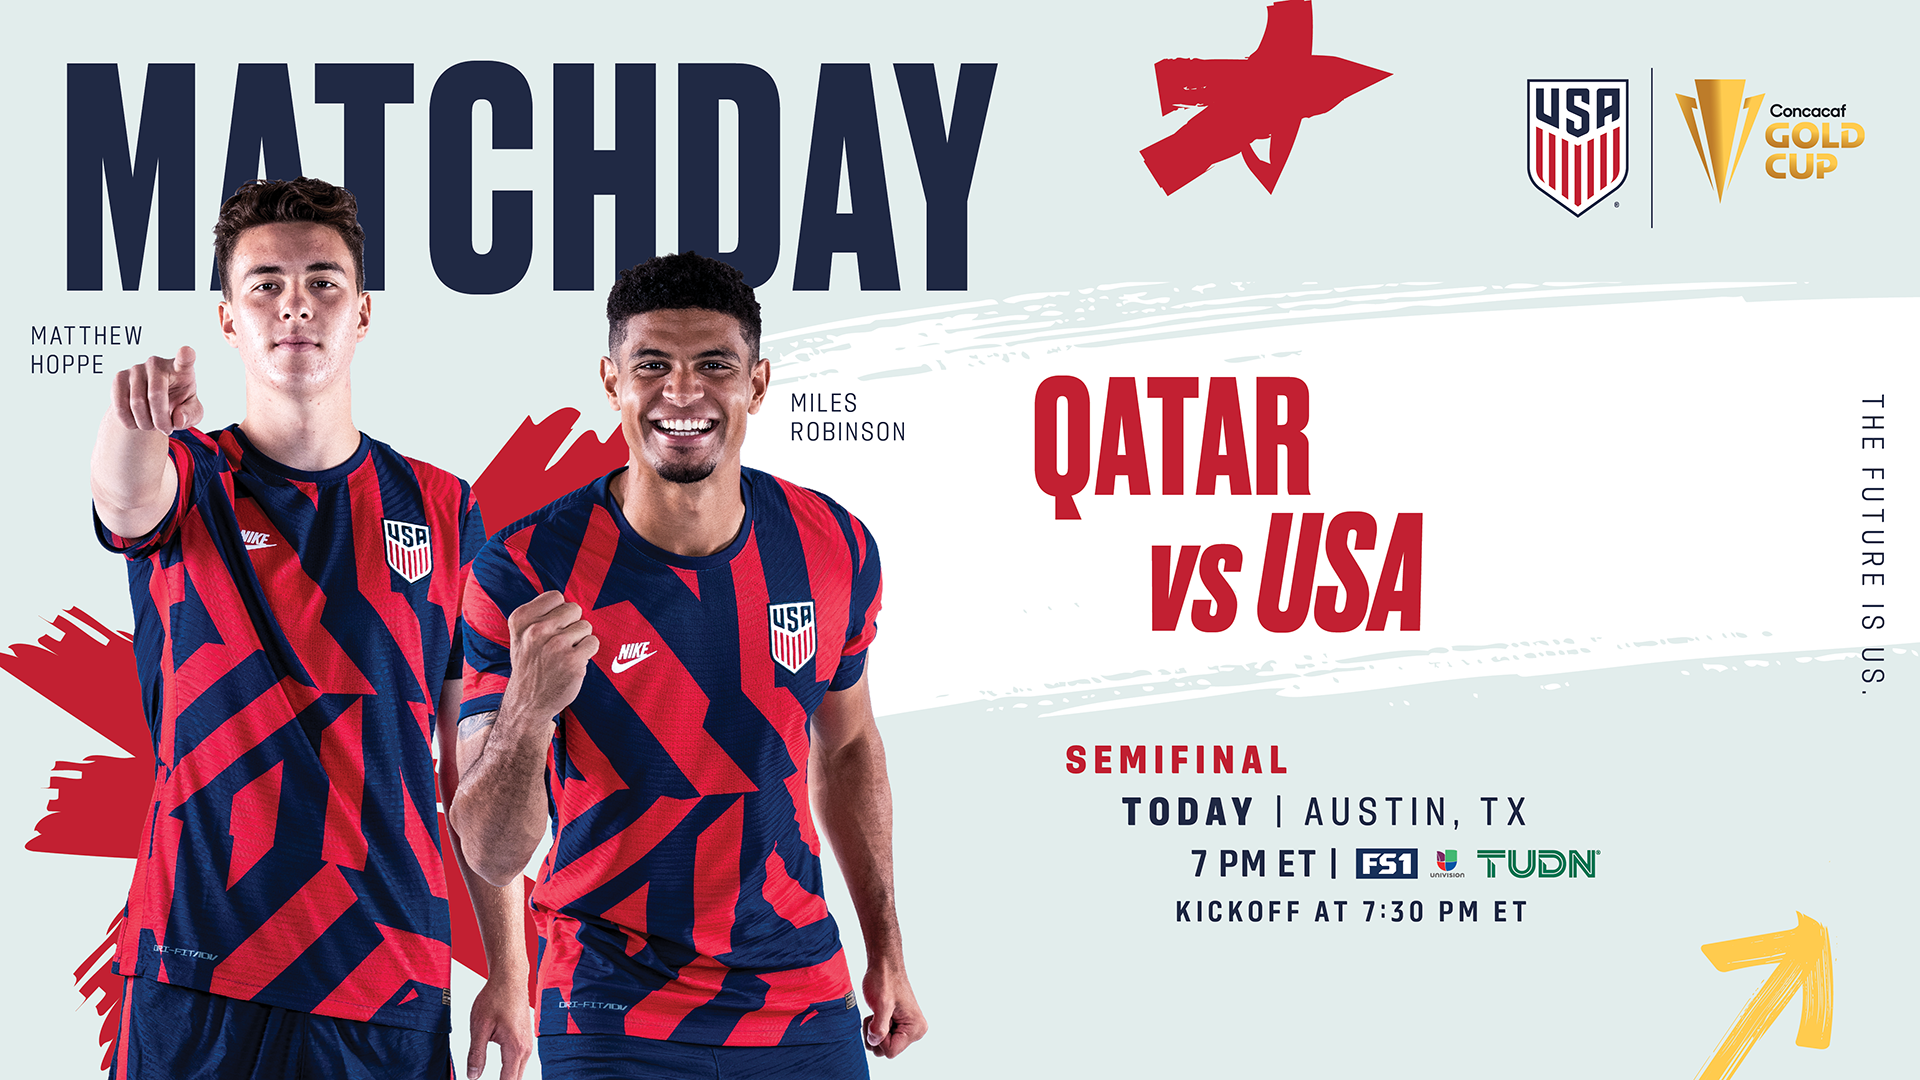 2021 Concacaf Gold Cup Semifinal: USA vs Qatar - Preview, Schedule, TV Channels, Start Time